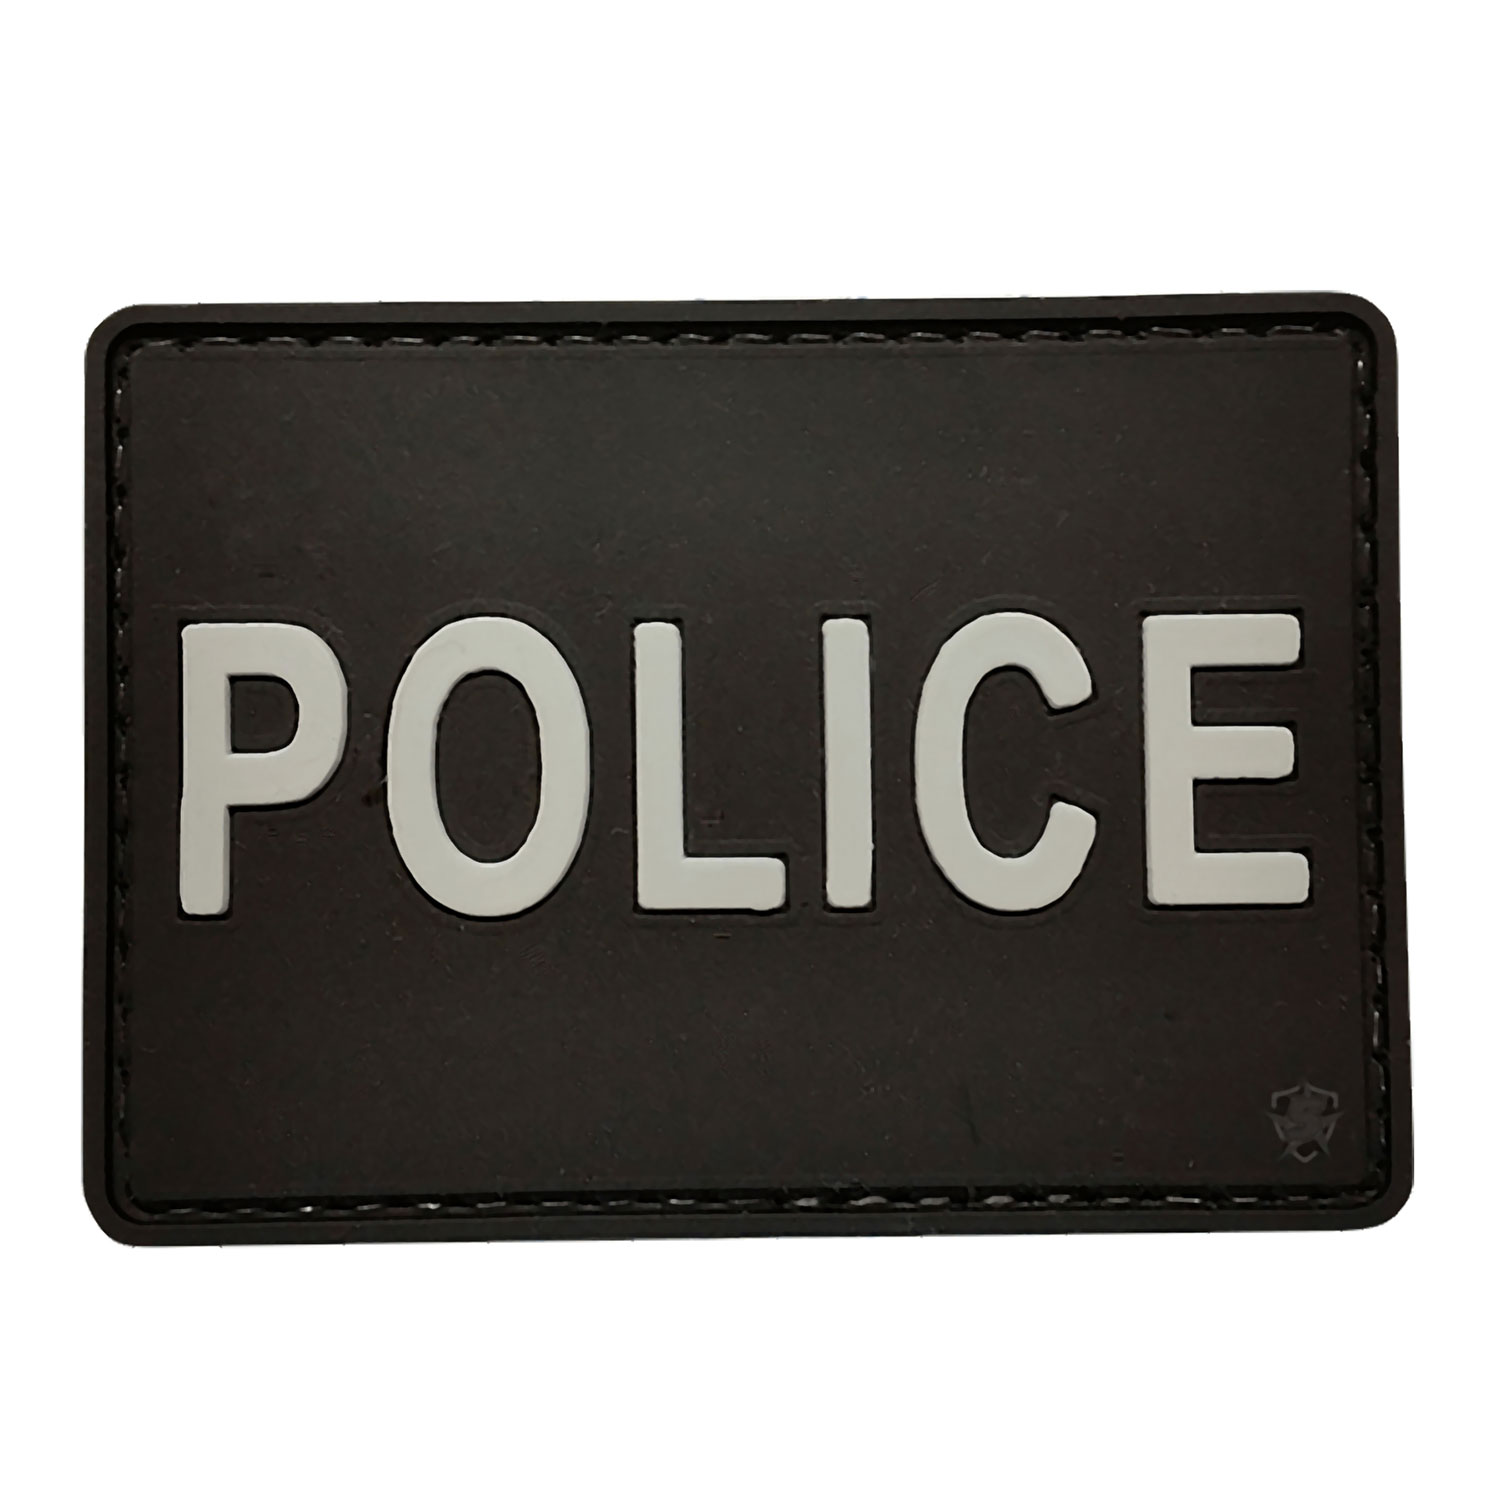 5ive Star Gear 2.5 x 2 POLICE Patch